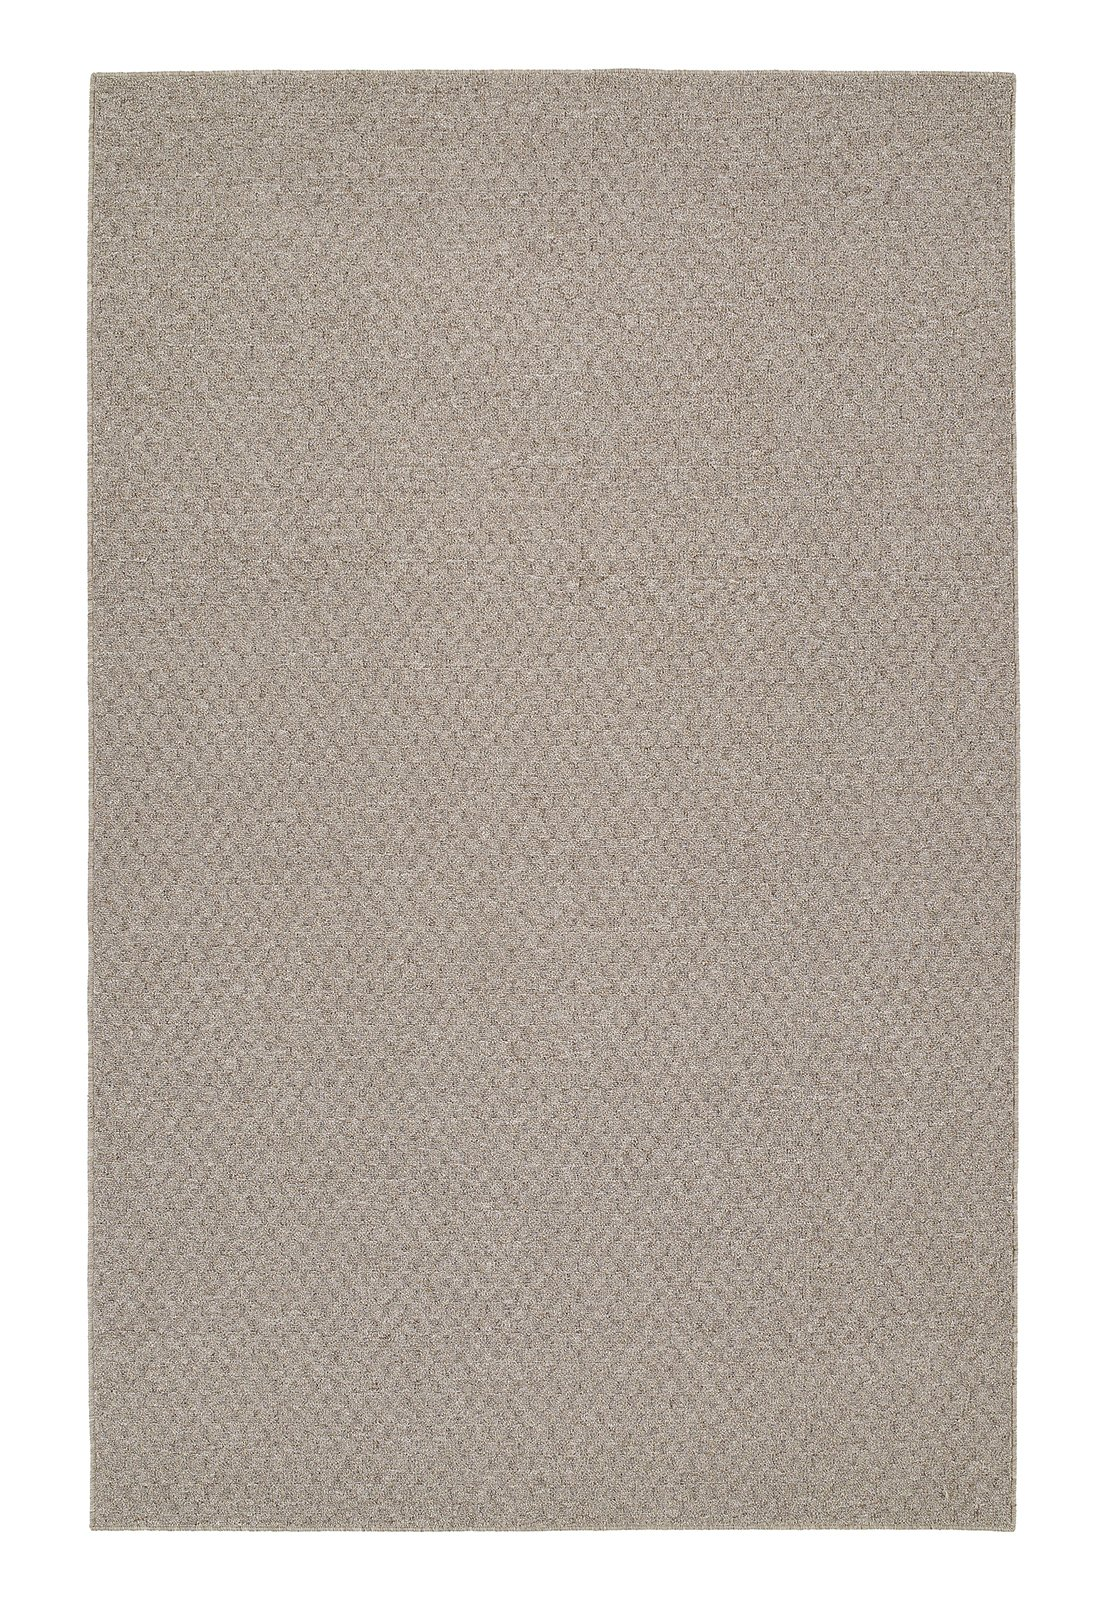 Garland Rug Town Square Area Rug, 5-Feet by 7-Feet, Pecan